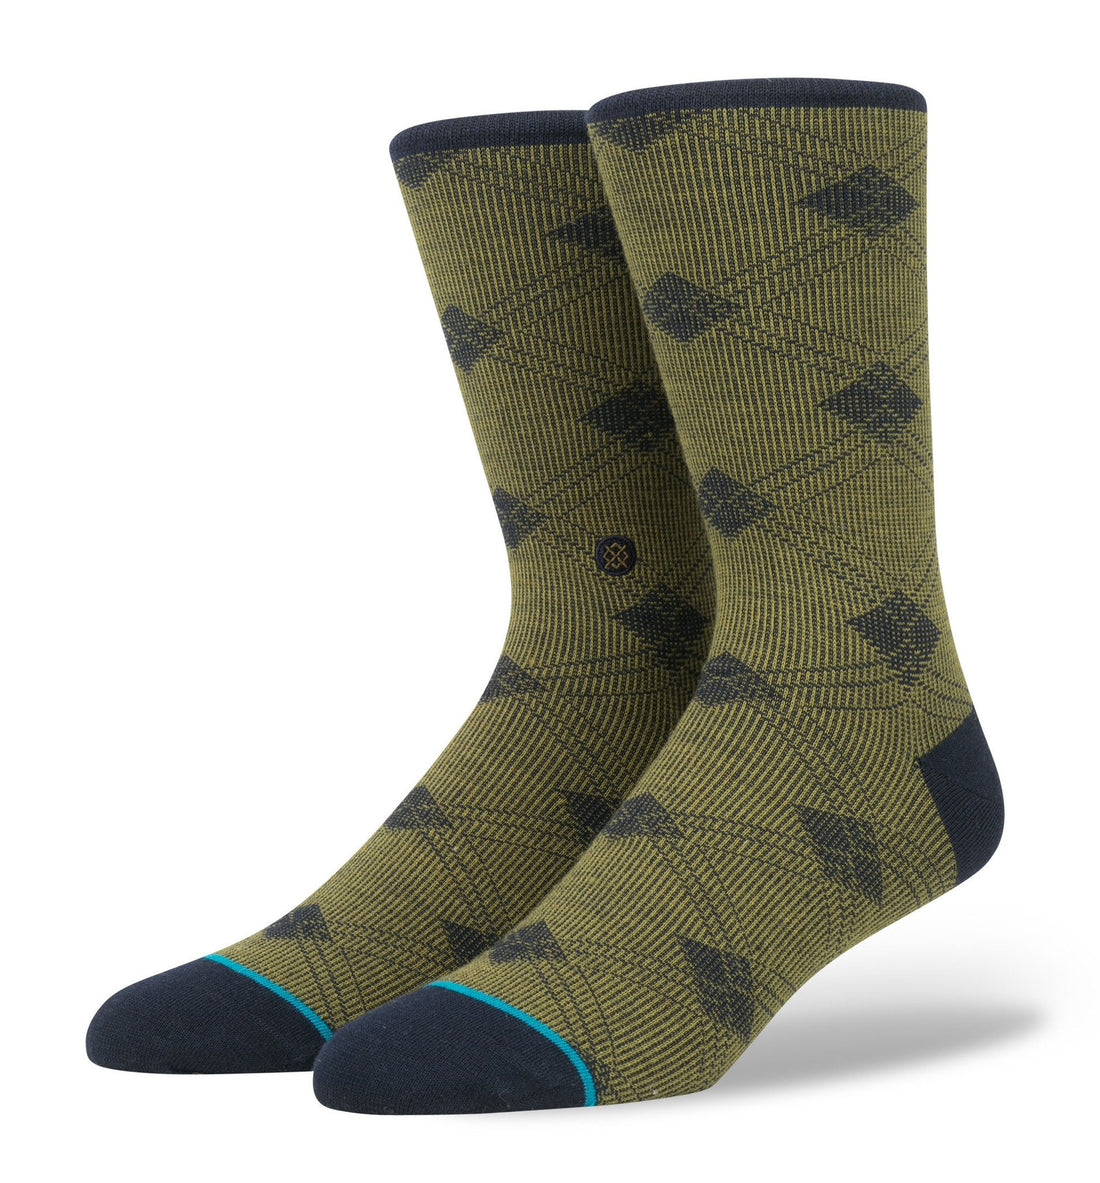 Stance Takeover Socks, L - Socks/Underwear - Iron and Resin